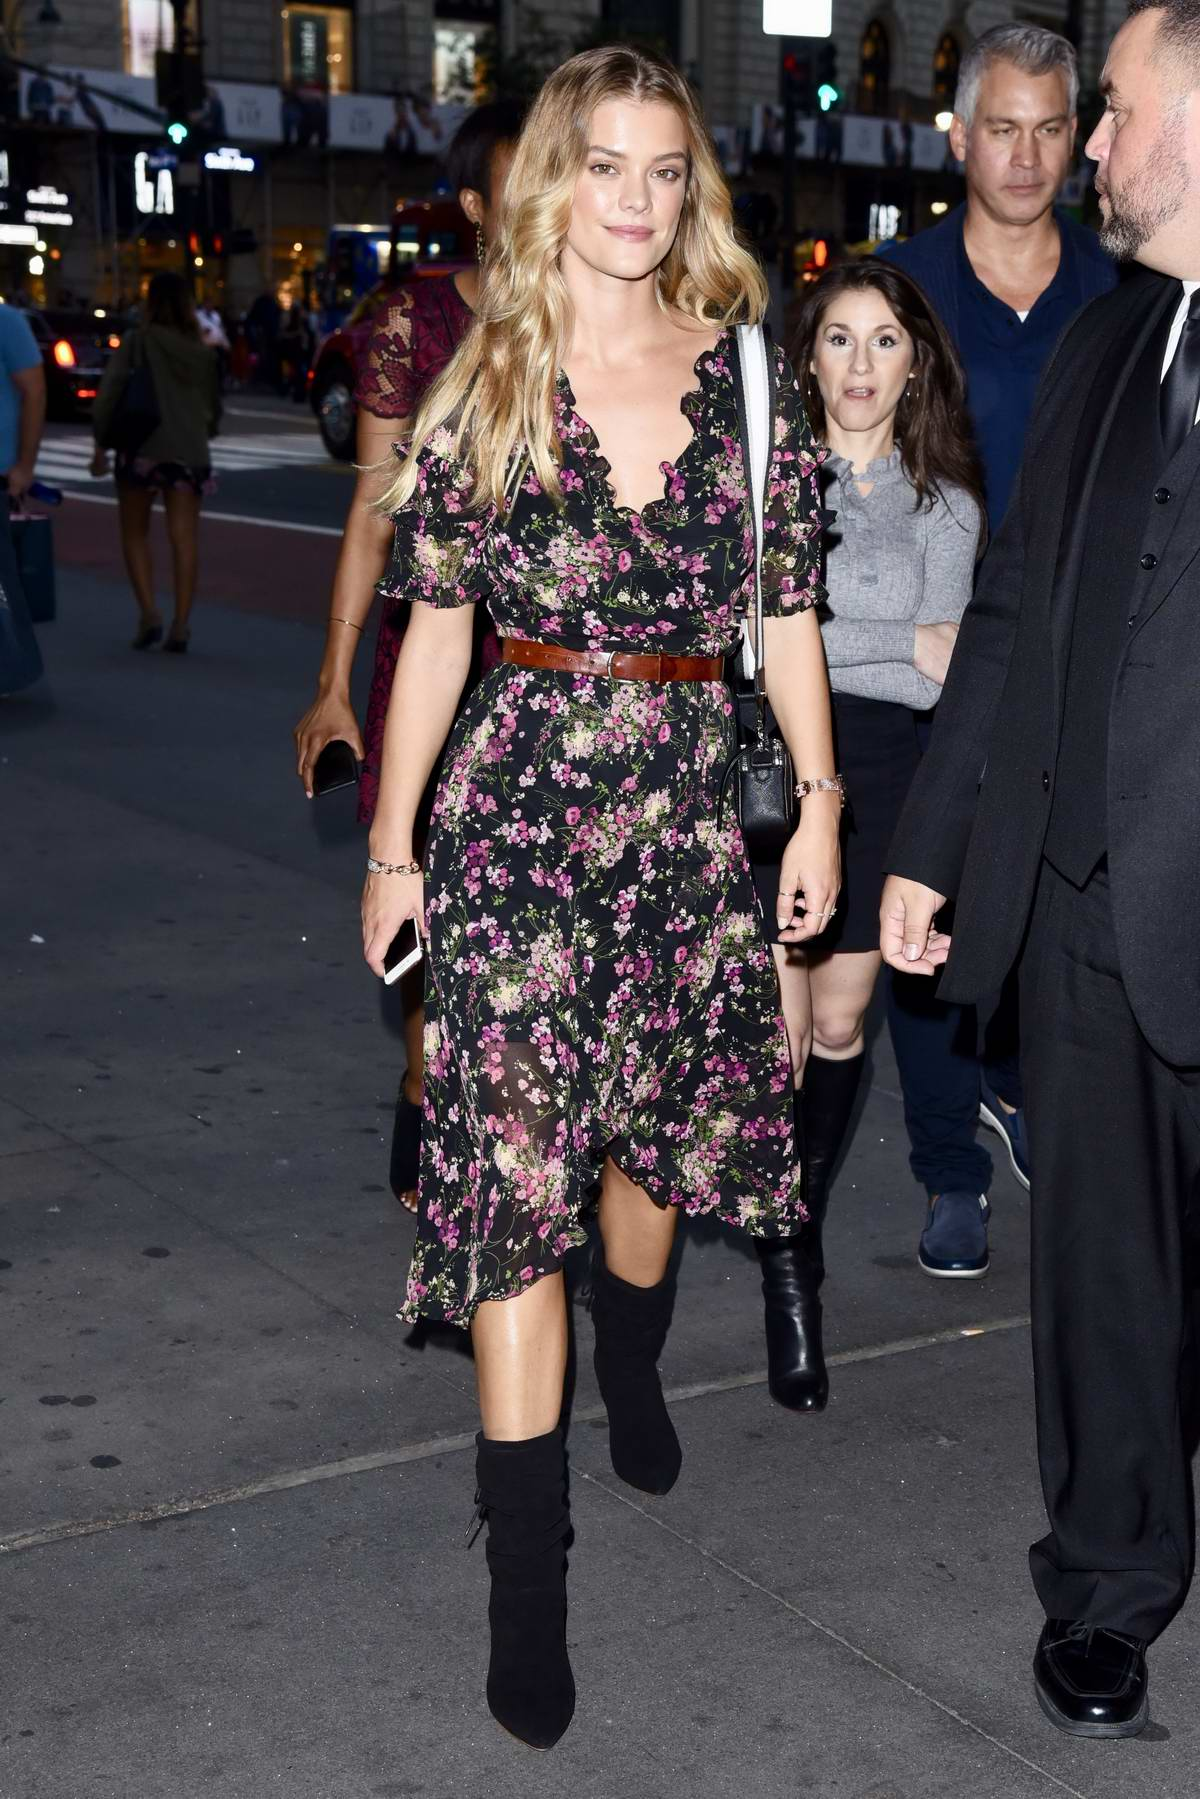 Nina Agdal looks pretty in a floral print dress during night out in New York City